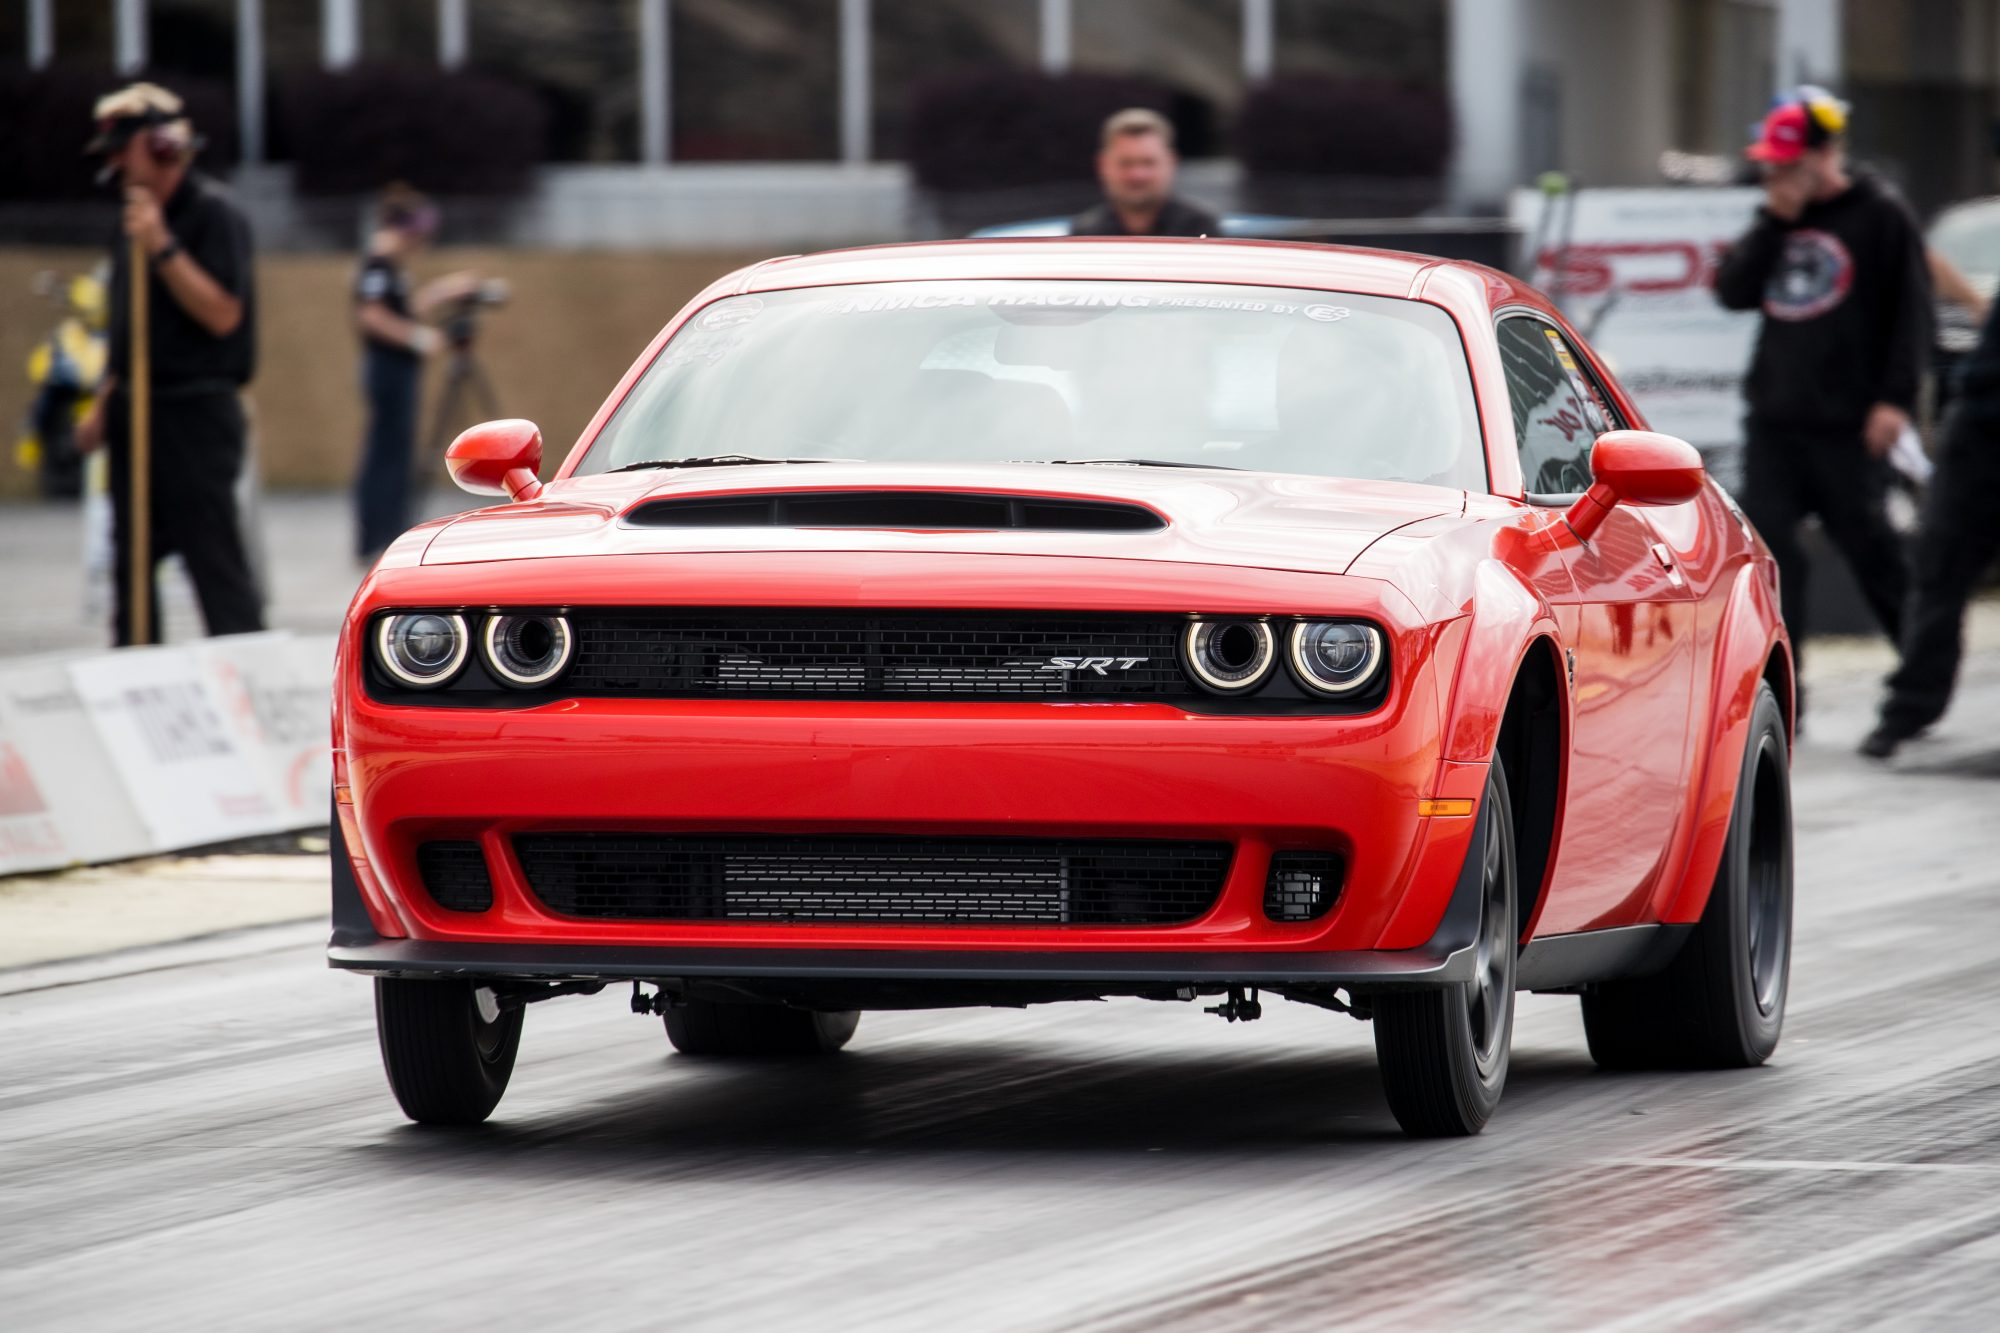 Red Dodge Challenger drag racing at NMCA event